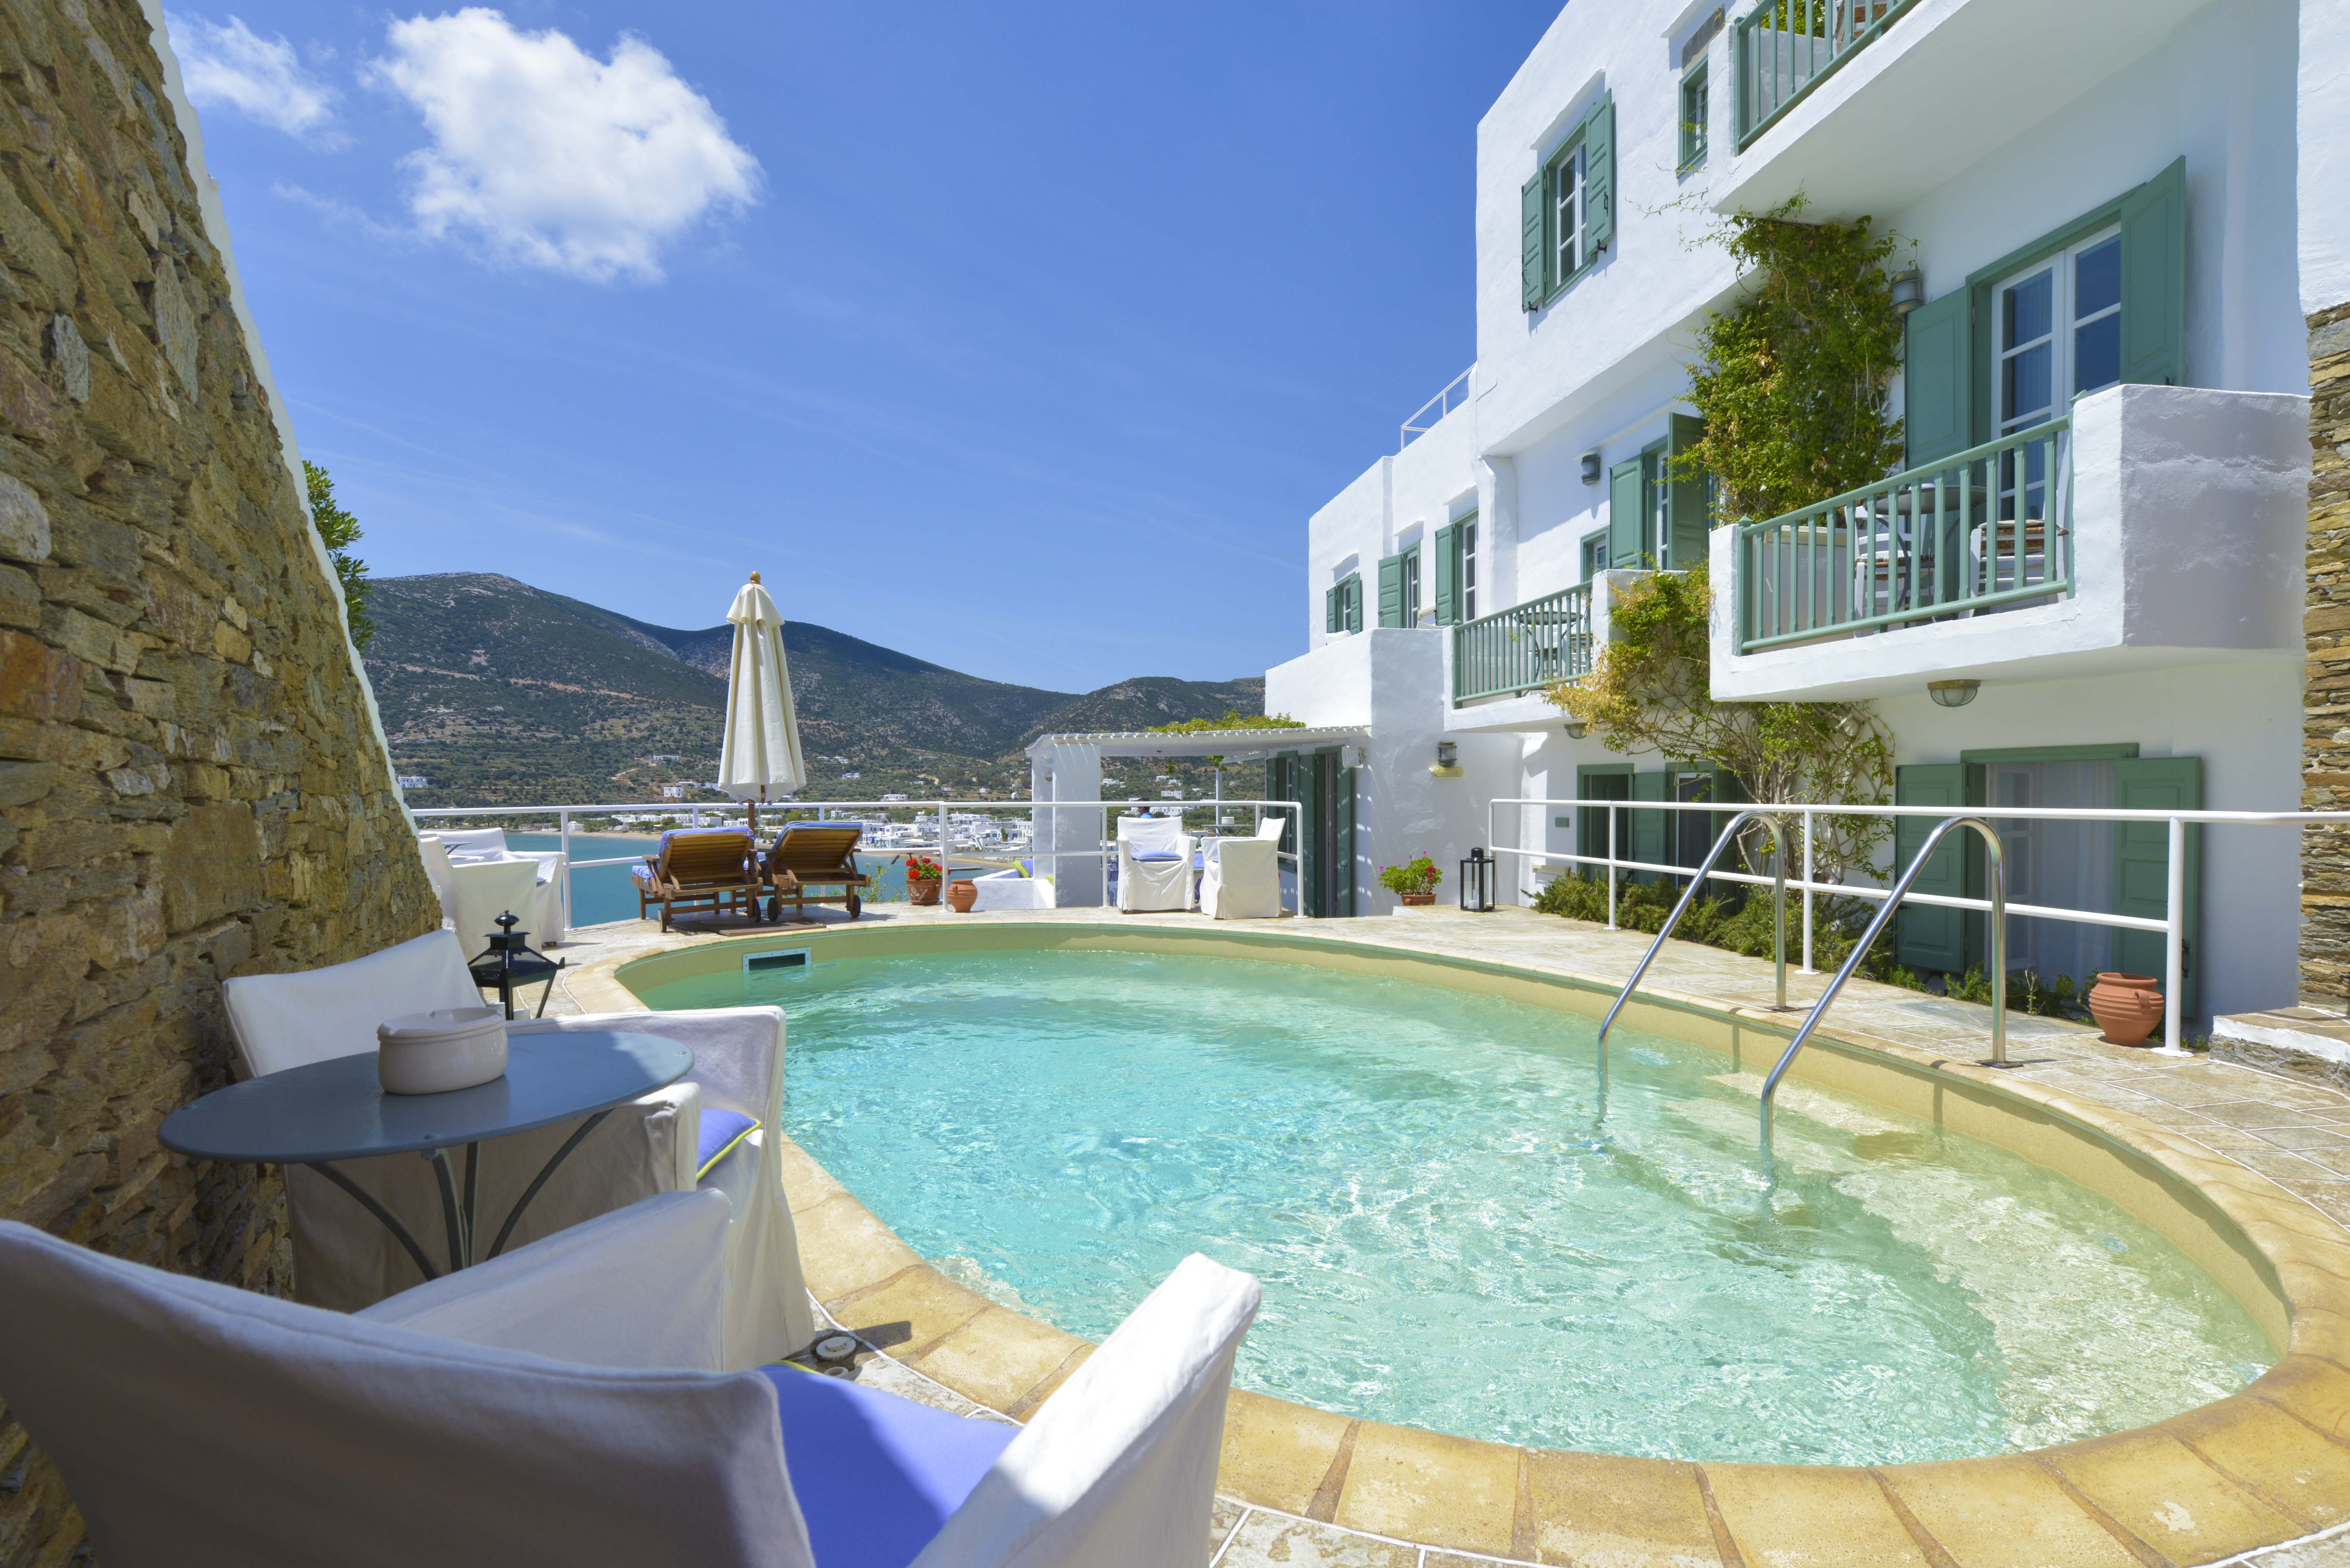 niriedes-hotel-sifnos-miles-away-travel-4